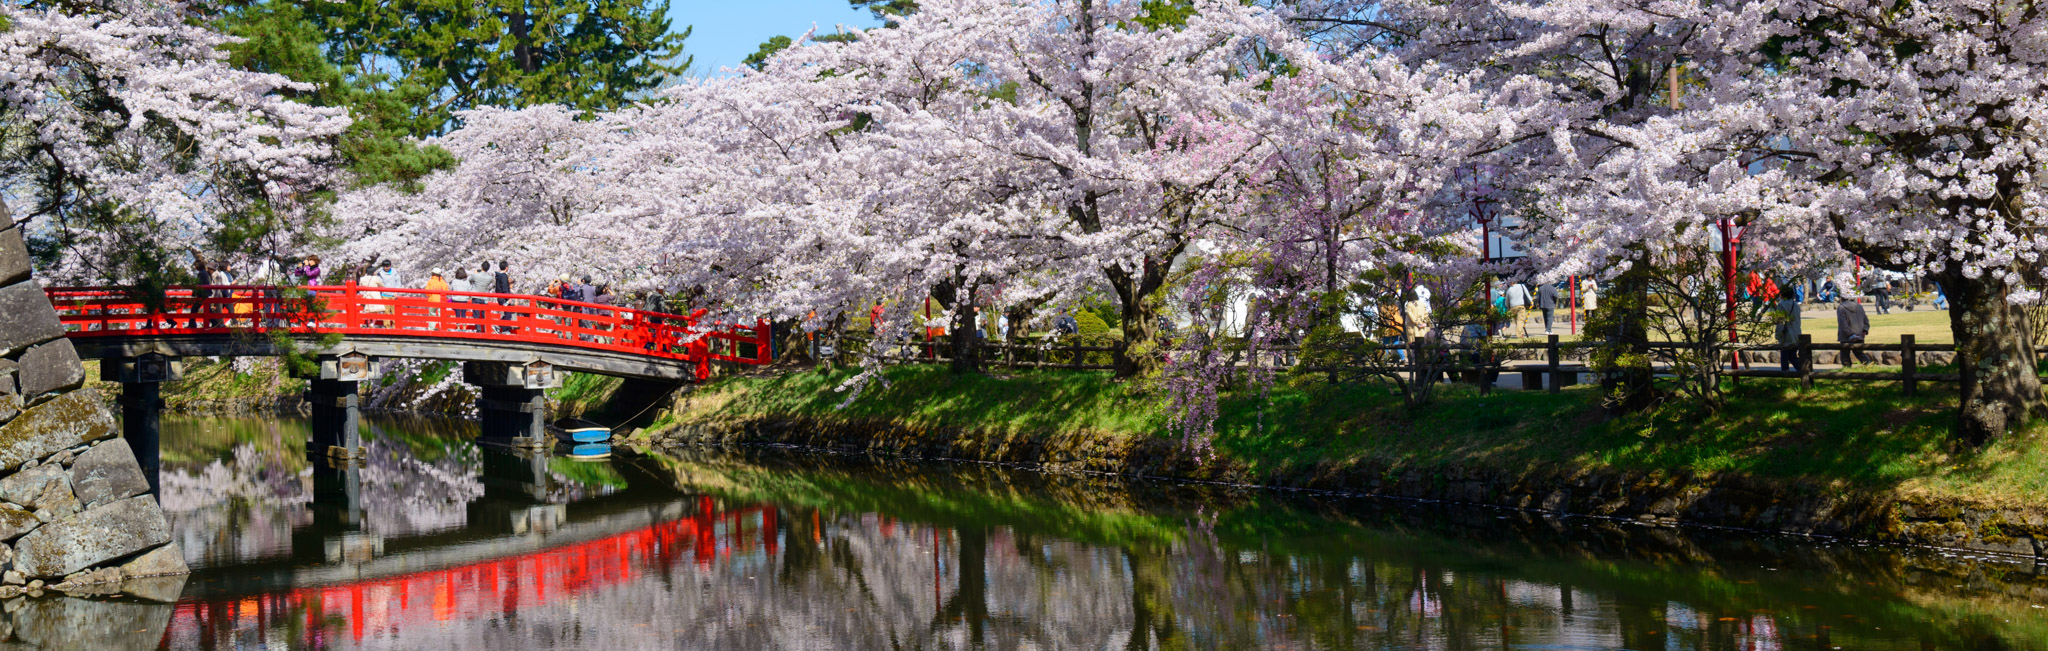 Japan Tour of Cherry blossoms at the Hirosaki Castle Park in Aomori